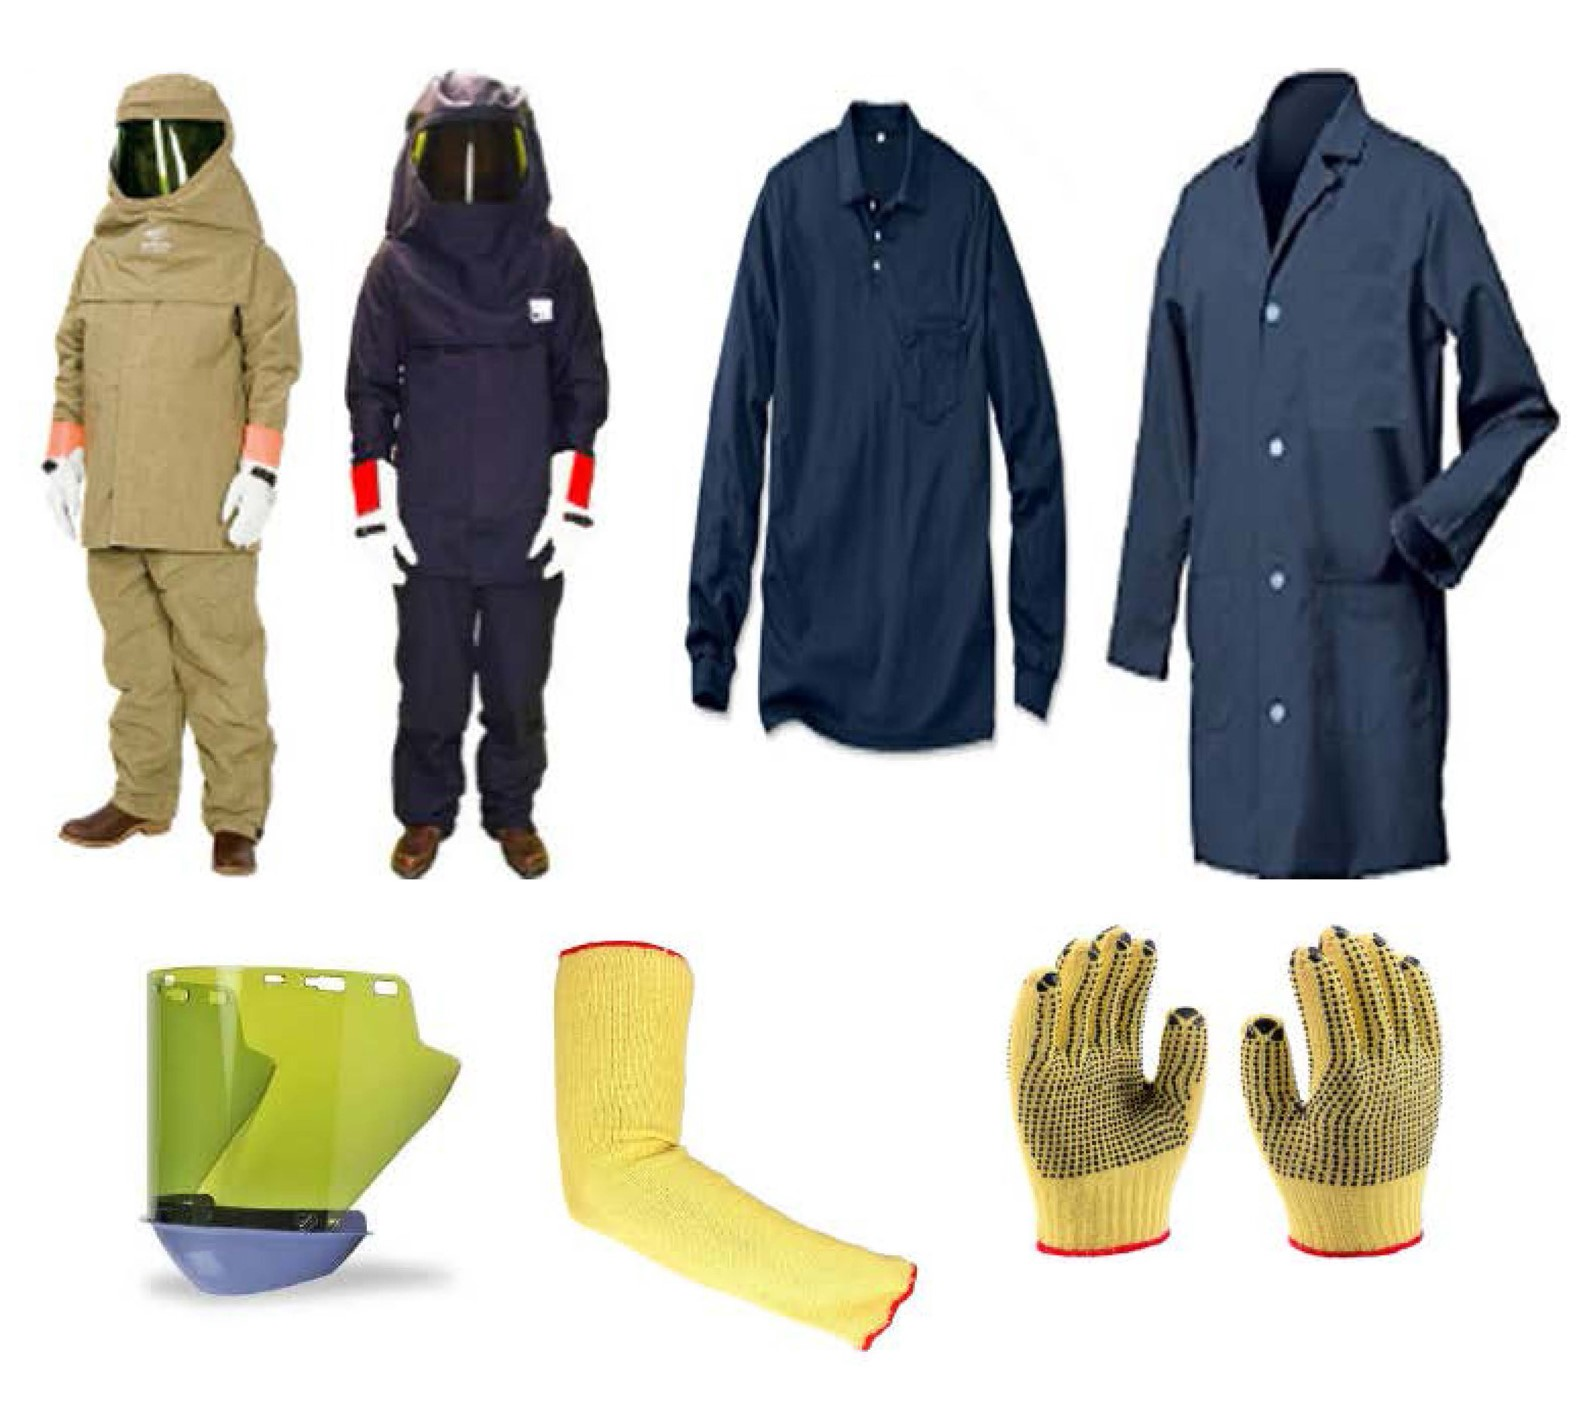 12.3 Electric Arc-Flash Protection